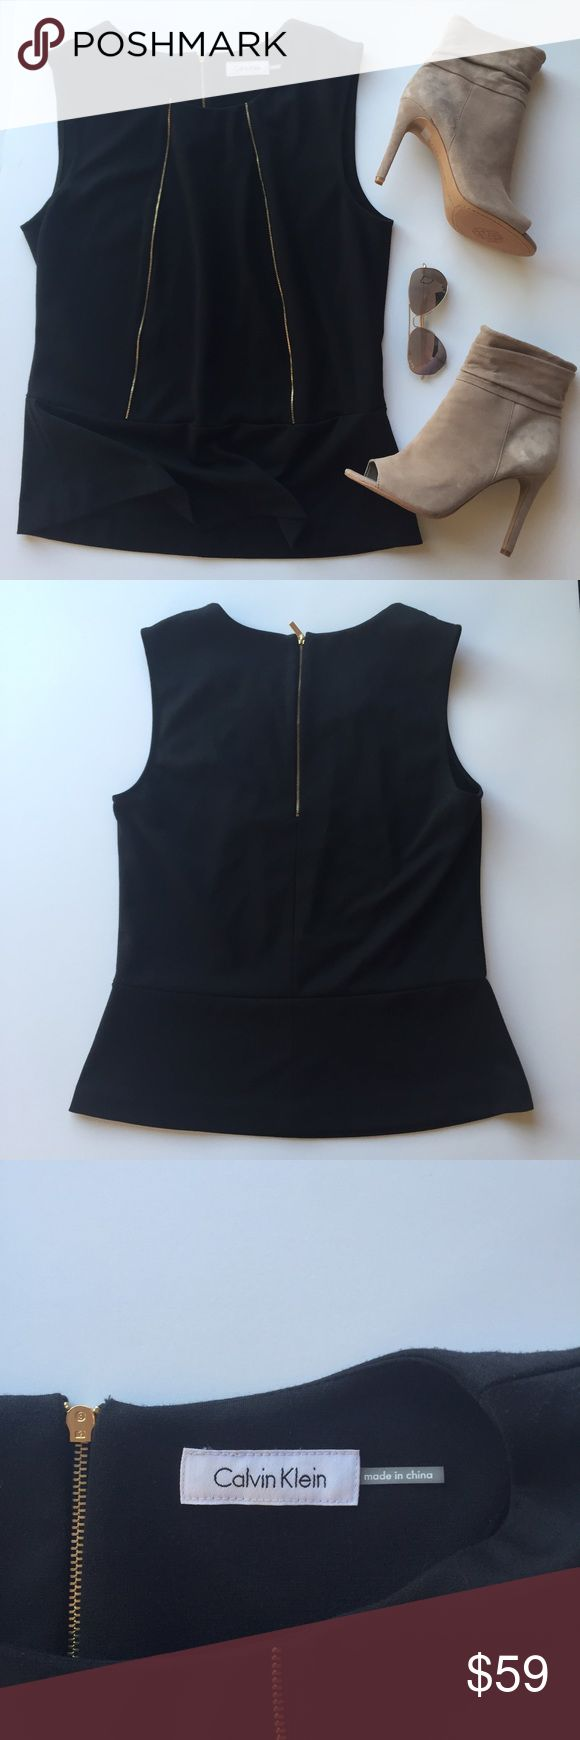 🎉HP🎉 - CALVIN KLEIN - Zipper Front Peplum Tank This peplum tank has an understated sexy edge with zipper detail in front and zip up back. Wear with trousers for the office, jeans for a brunch date, or spice it up with leather leggings & nude heels for a night out!                                   🔸Bundle & Save 15% on 2+ items!                         🔸Free gift on purchases over $100!                    🙅🏼No trades / selling off of Posh.                         🌟Offers always…